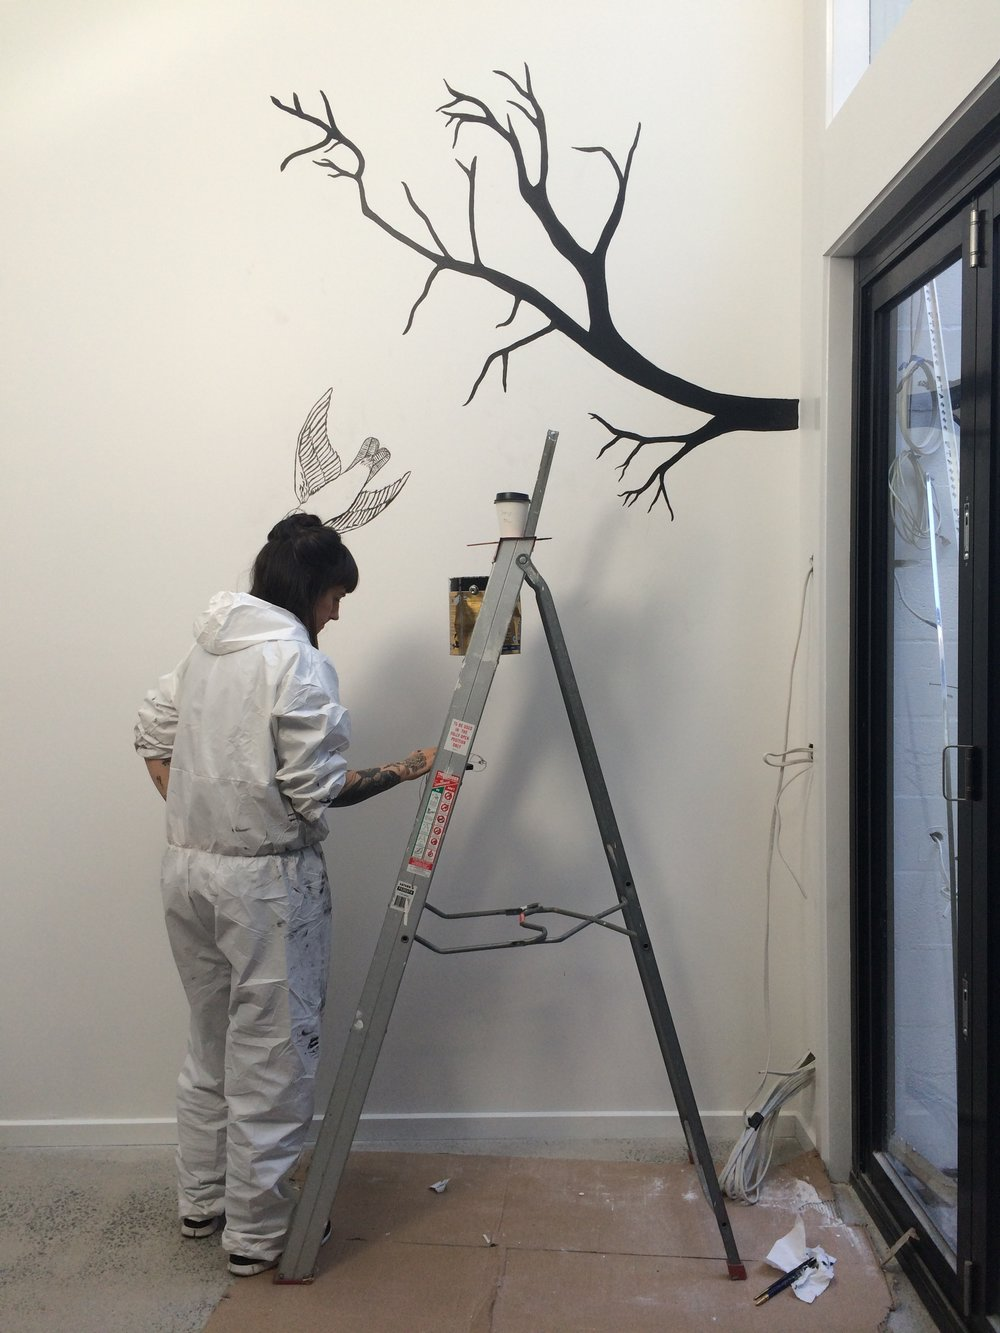 CUSTOM MURAL by Tessa McDonnell| Deatil of artist in action